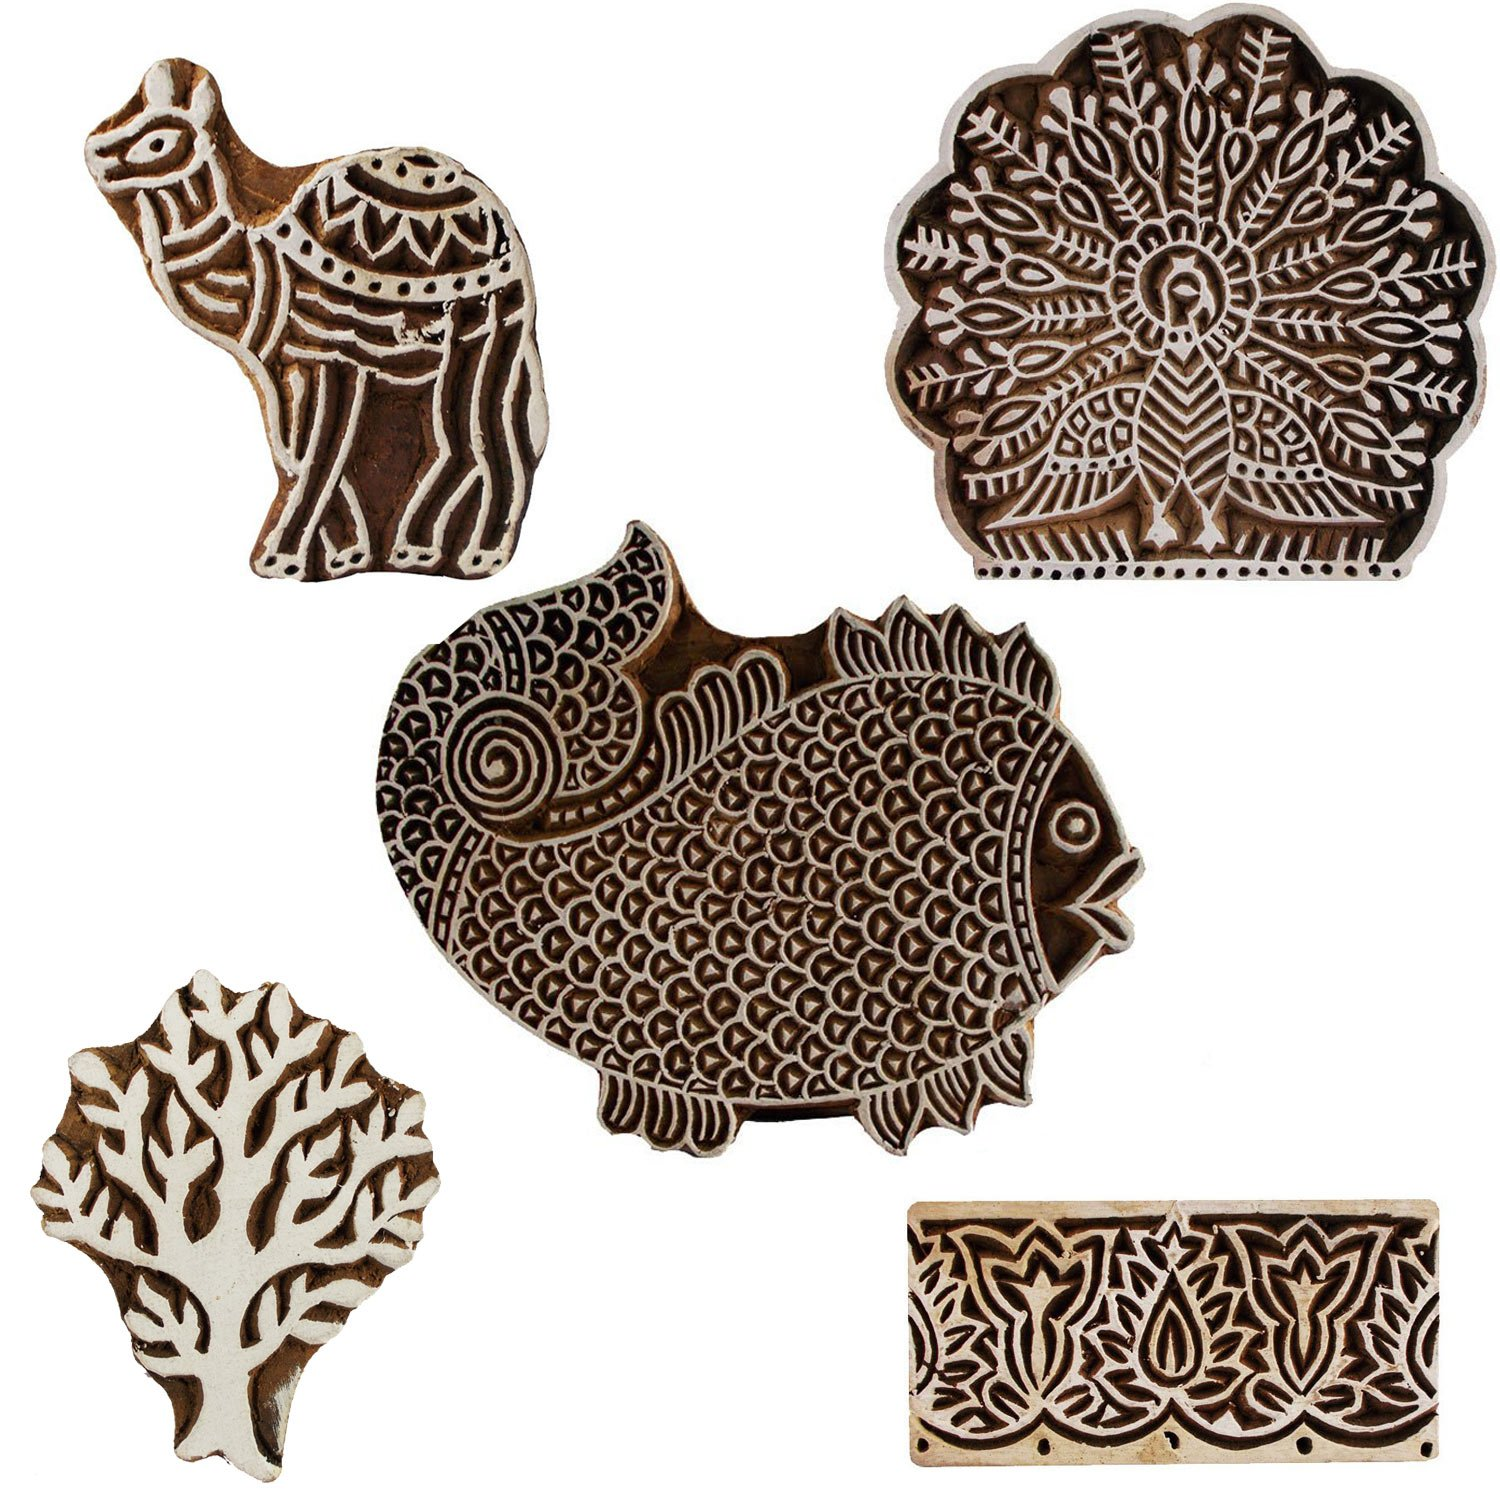 Set of 5 Wooden Textile Handmade Camel Peacock Fish Tree Floral Border Printing Block Clay Potter Craft Scrapbook Stamps